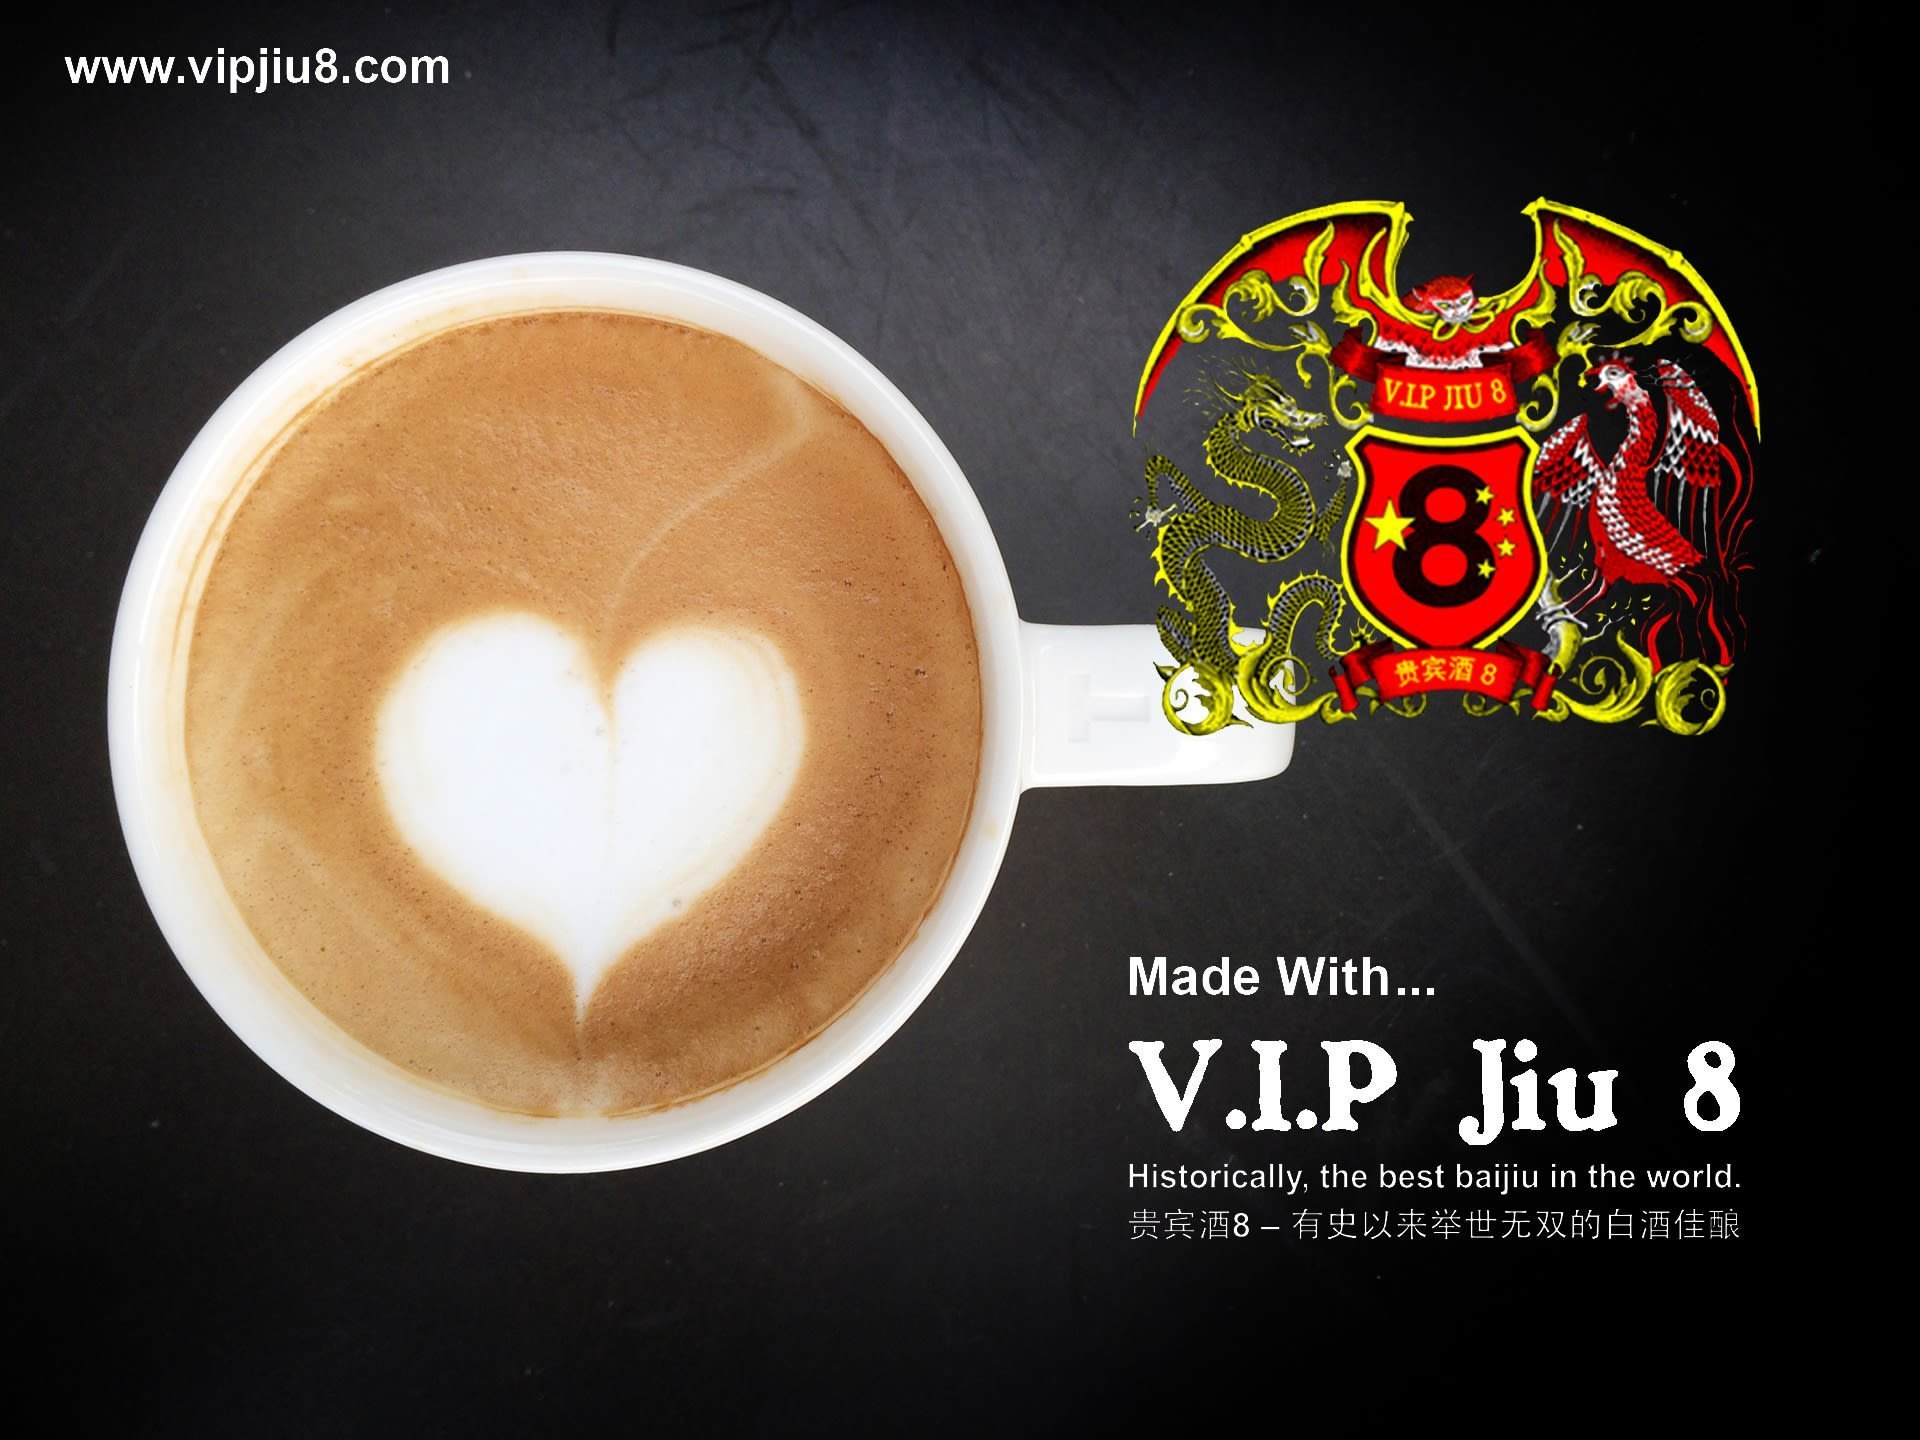 Make Frothy Coffee Step By Step With V.I.P Jiu 8 Baijiu